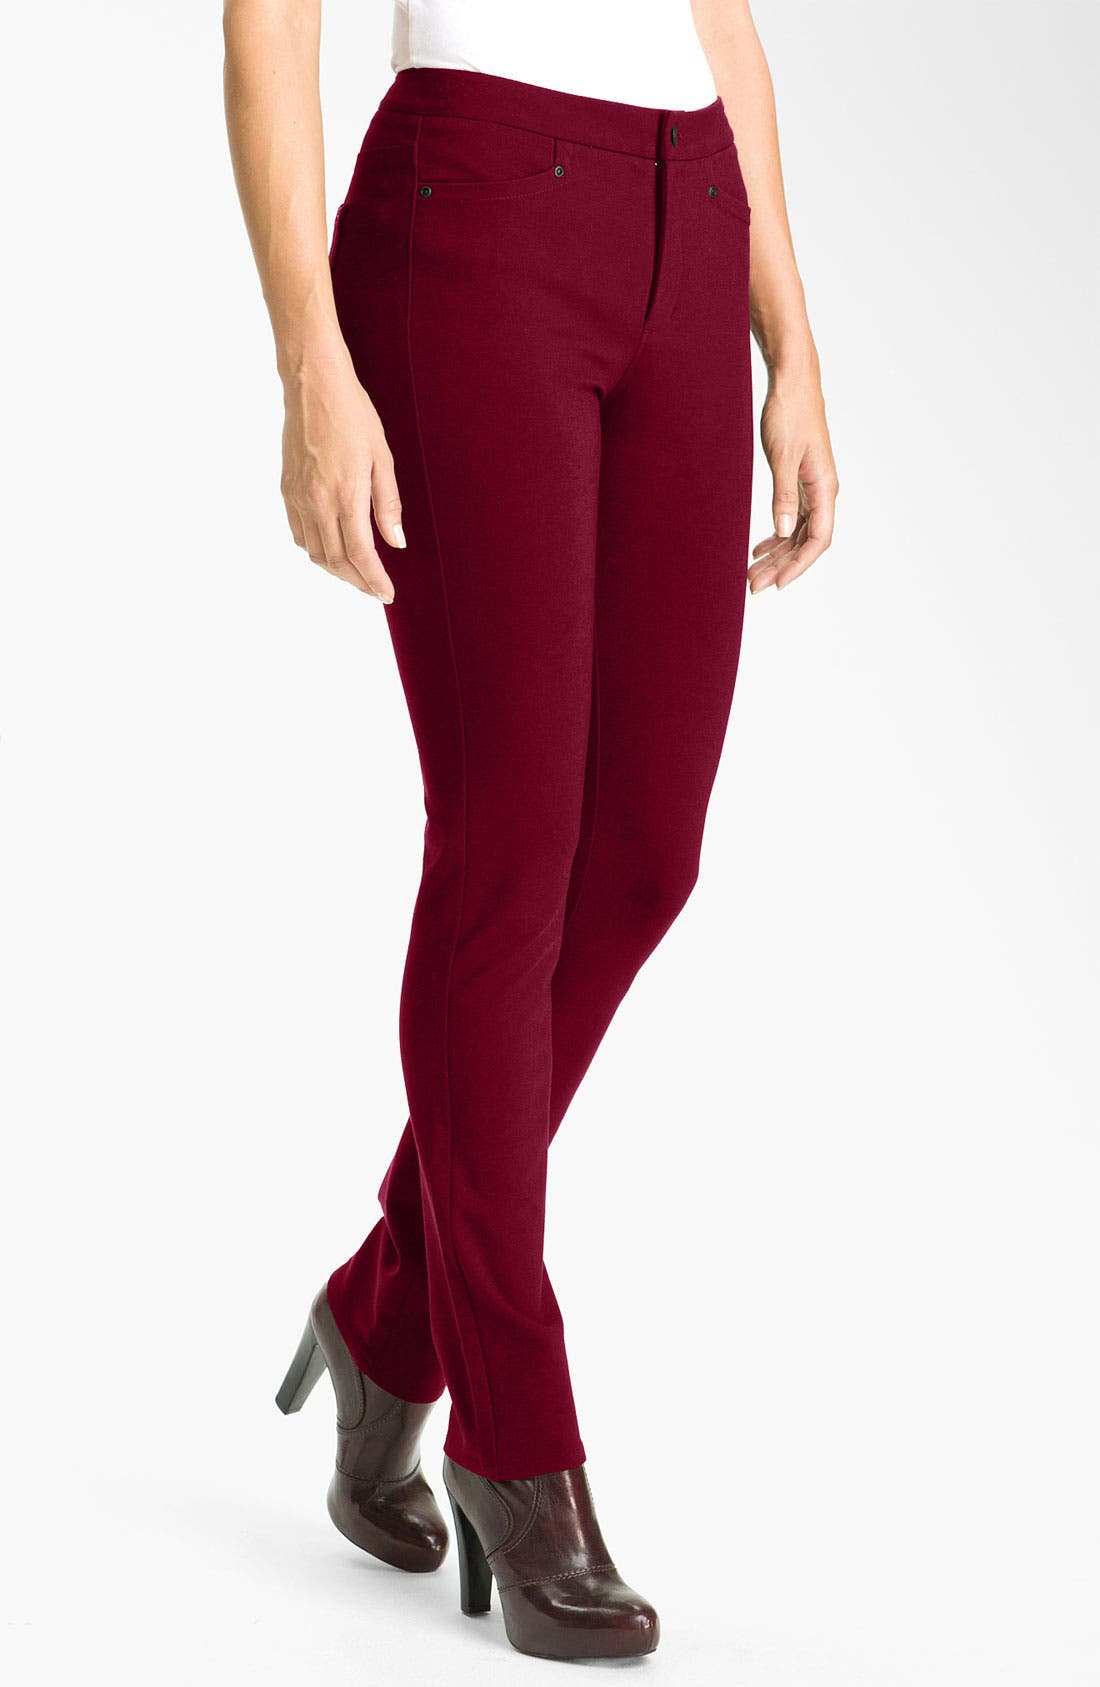 'Samantha' Stretch Ponte Knit Pants,                         Main,                         color, Plumberry